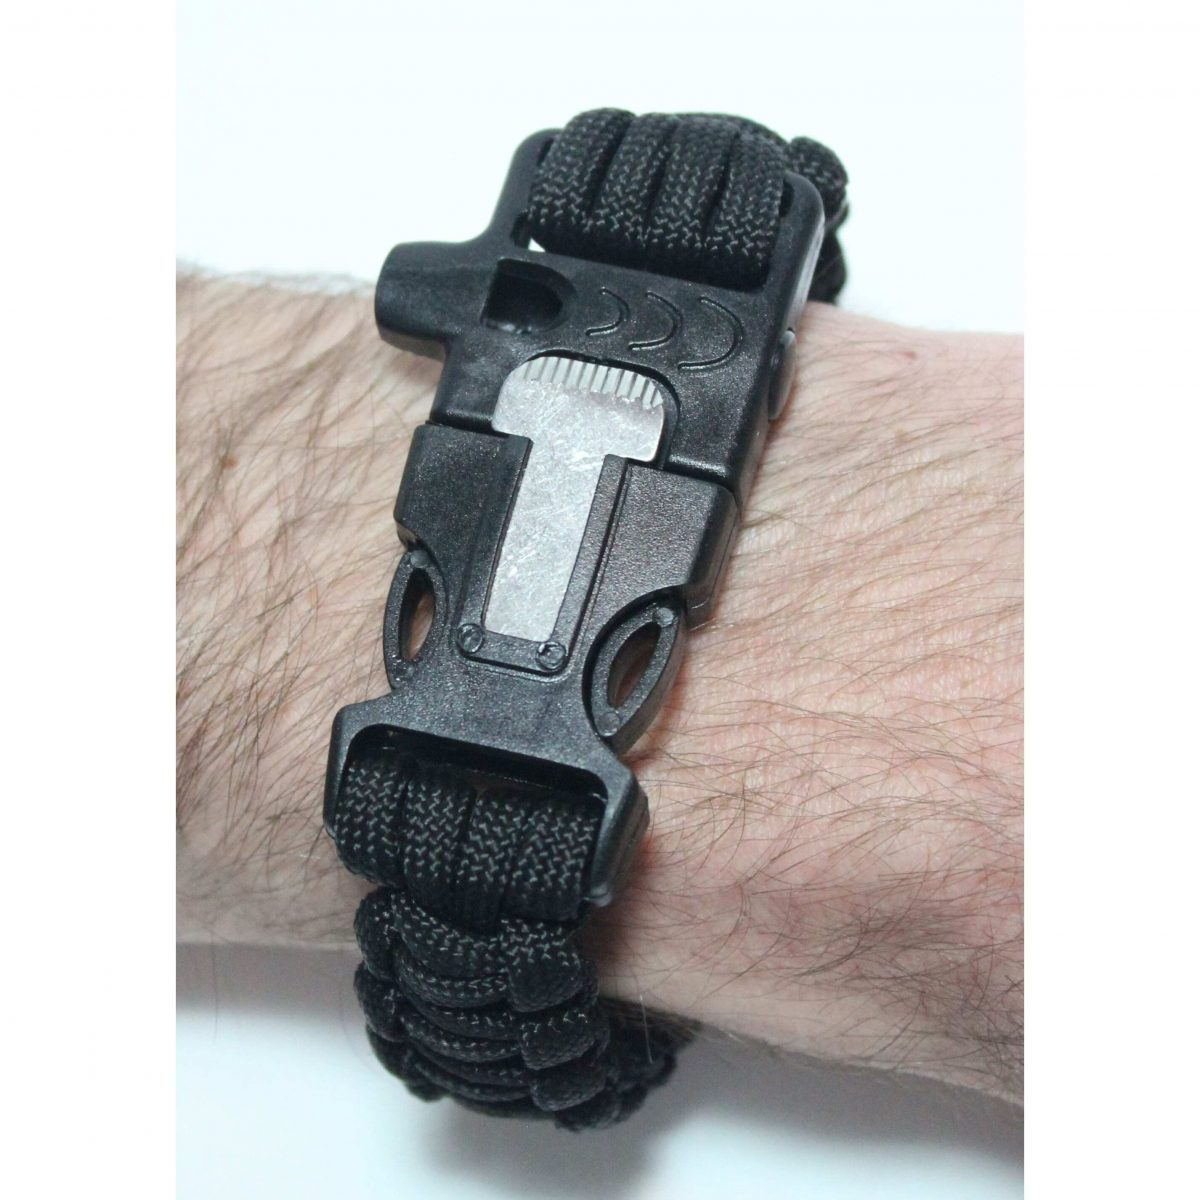 Paracord Survival Bracelet with Fire Starter and Whistle Built In - 10.5 Inch Length-464